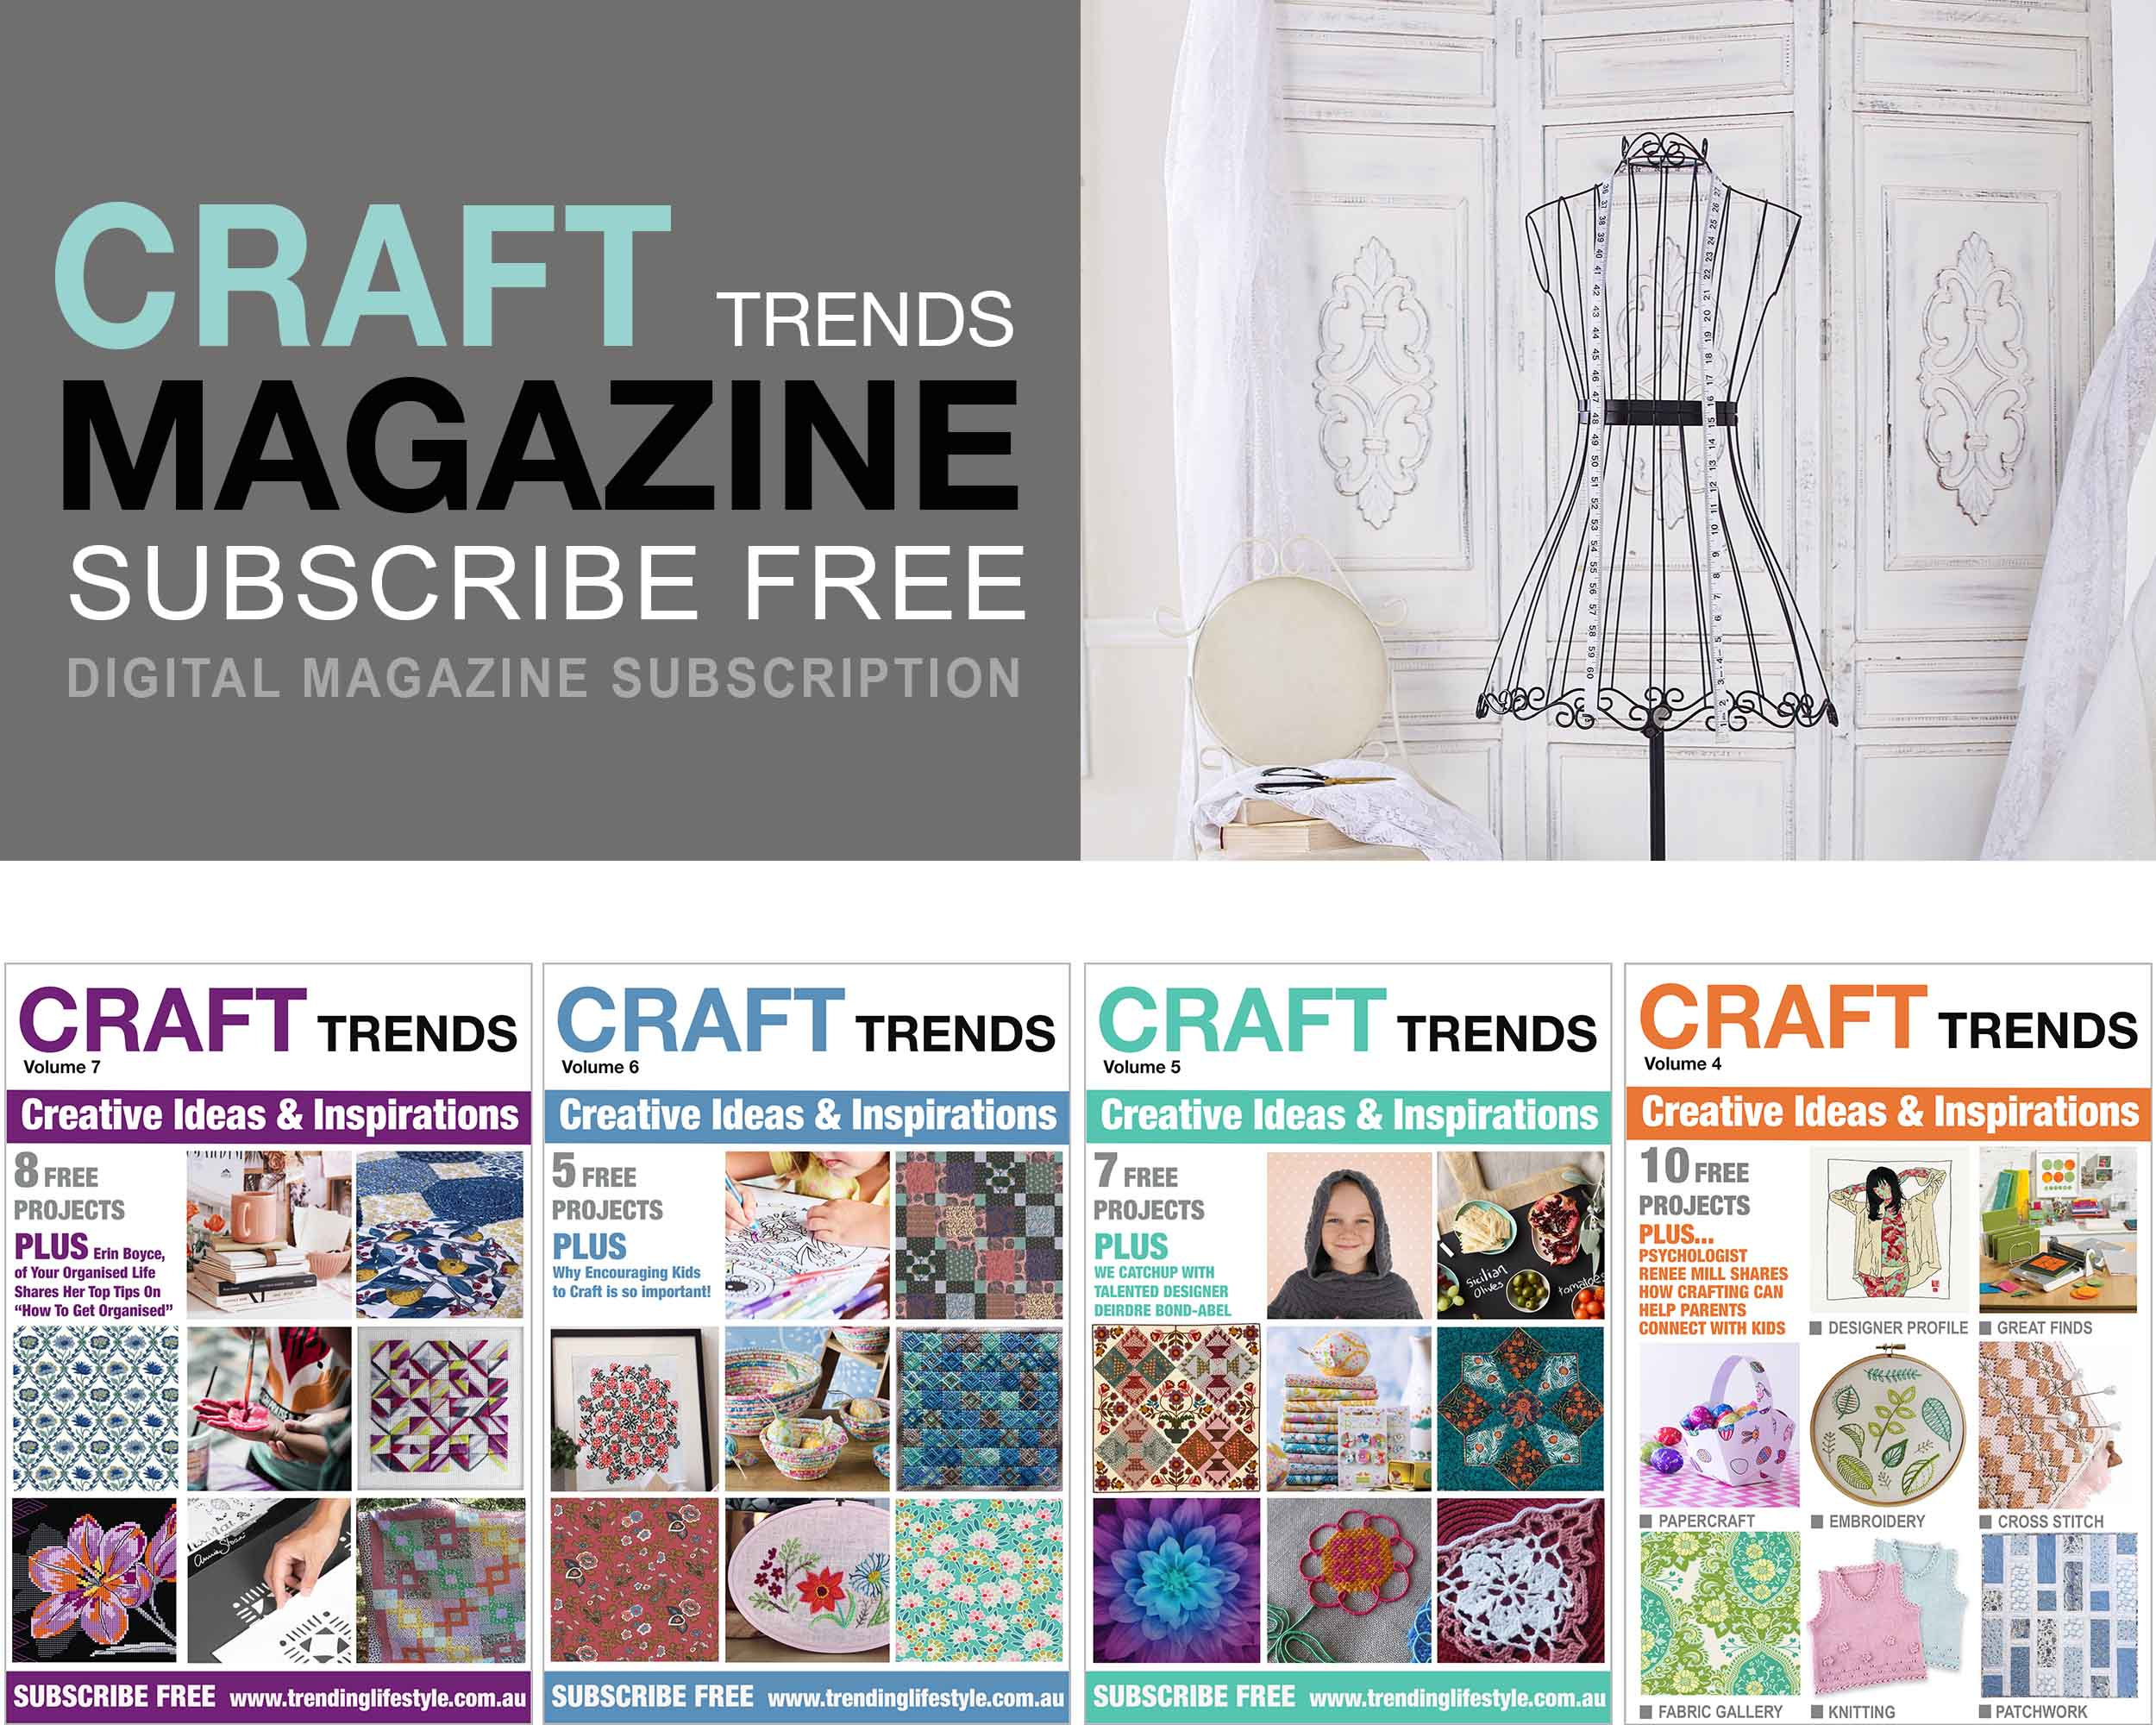 Craft Trends Magazine Subscribe Free